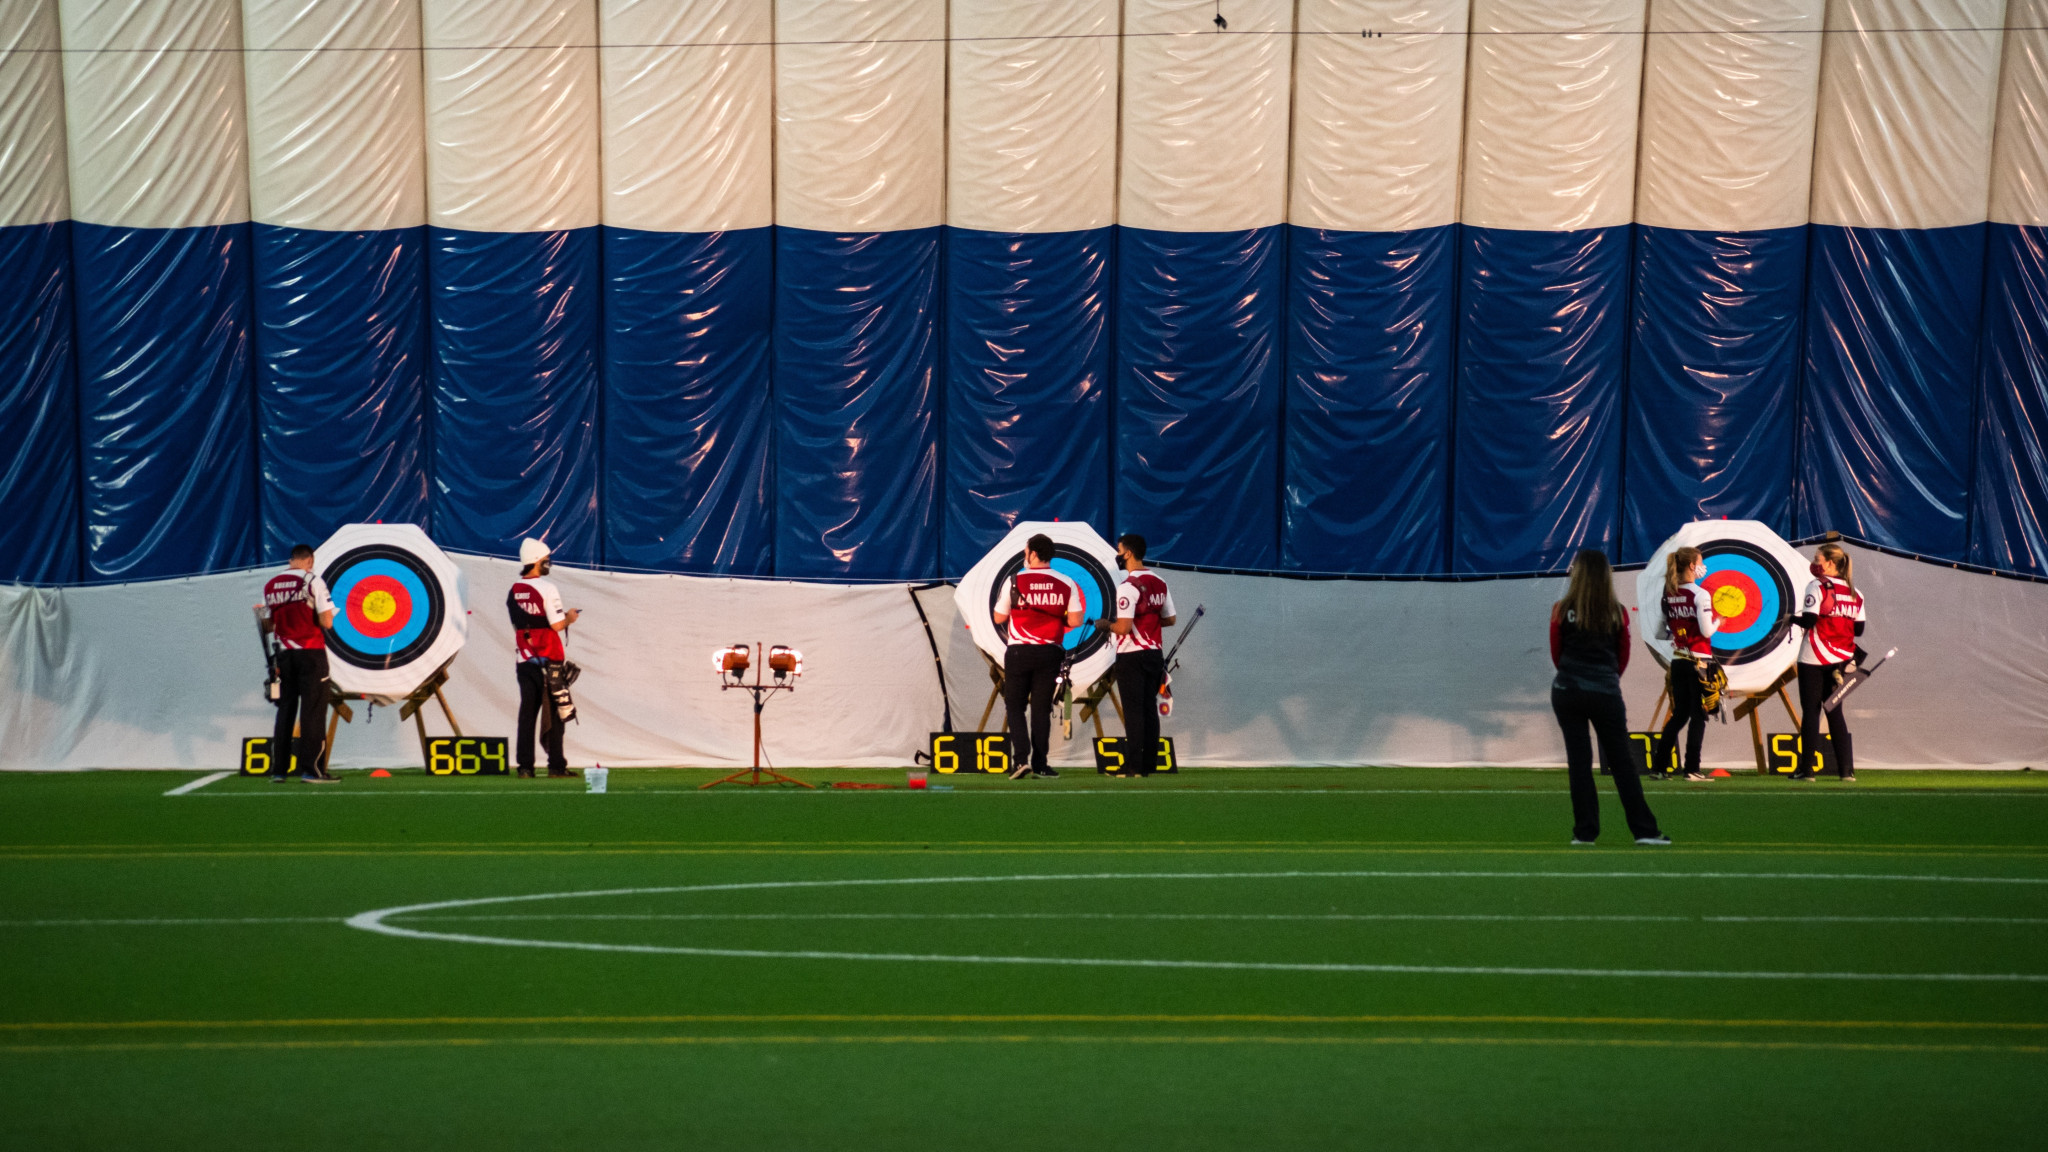 Canadian archers receive exemption to train in lockdown ahead of Tokyo 2020 qualifiers